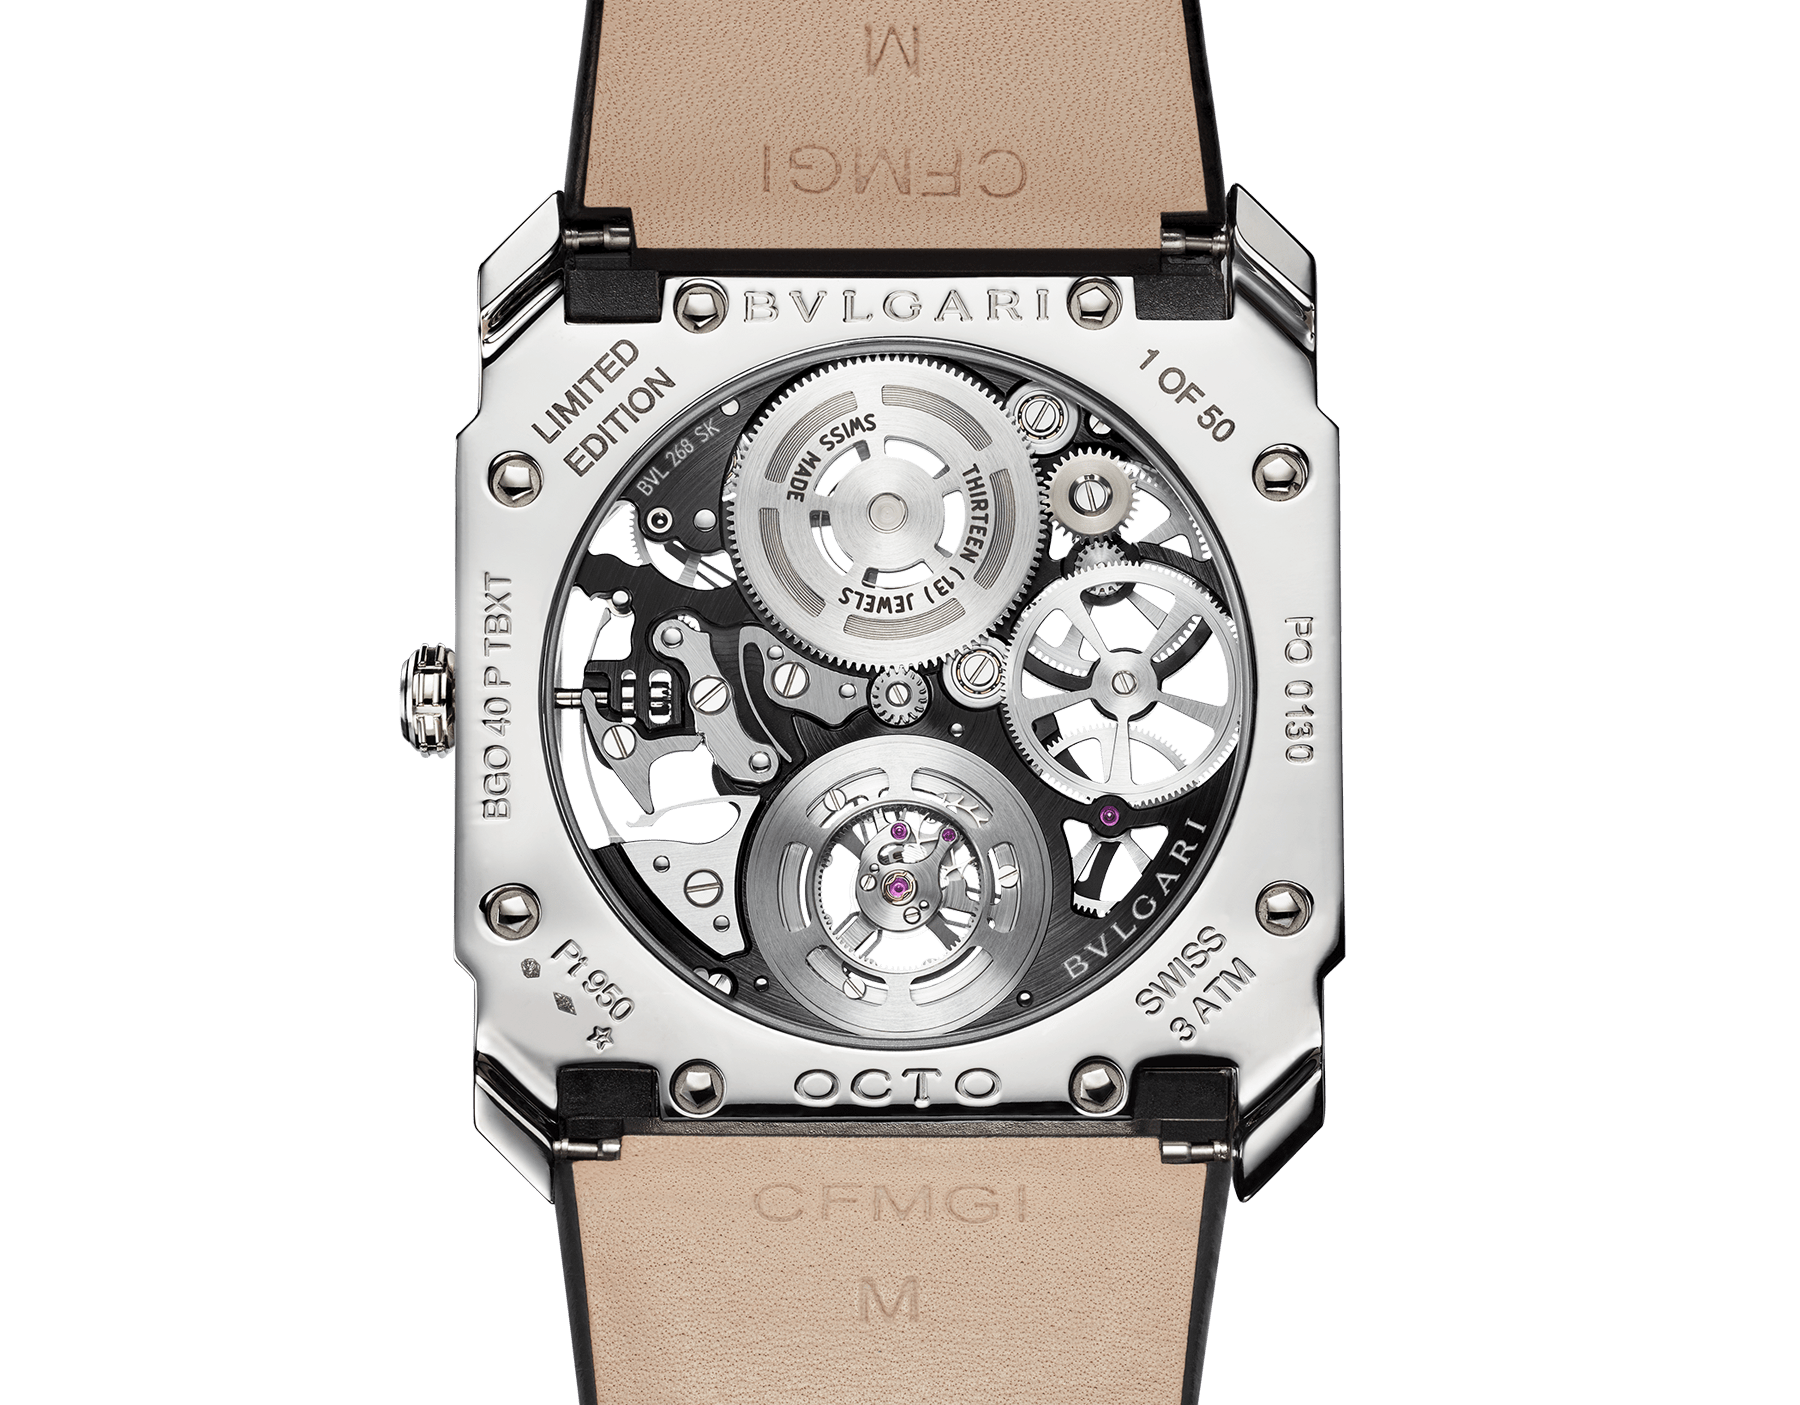 Octo Finissimo Tourbillon Squelette watch with ultra-thin mechanical skeleton movement, manual winding and ball-bearings system, platinum case, transparent dial and black alligator bracelet. 102719 image 4